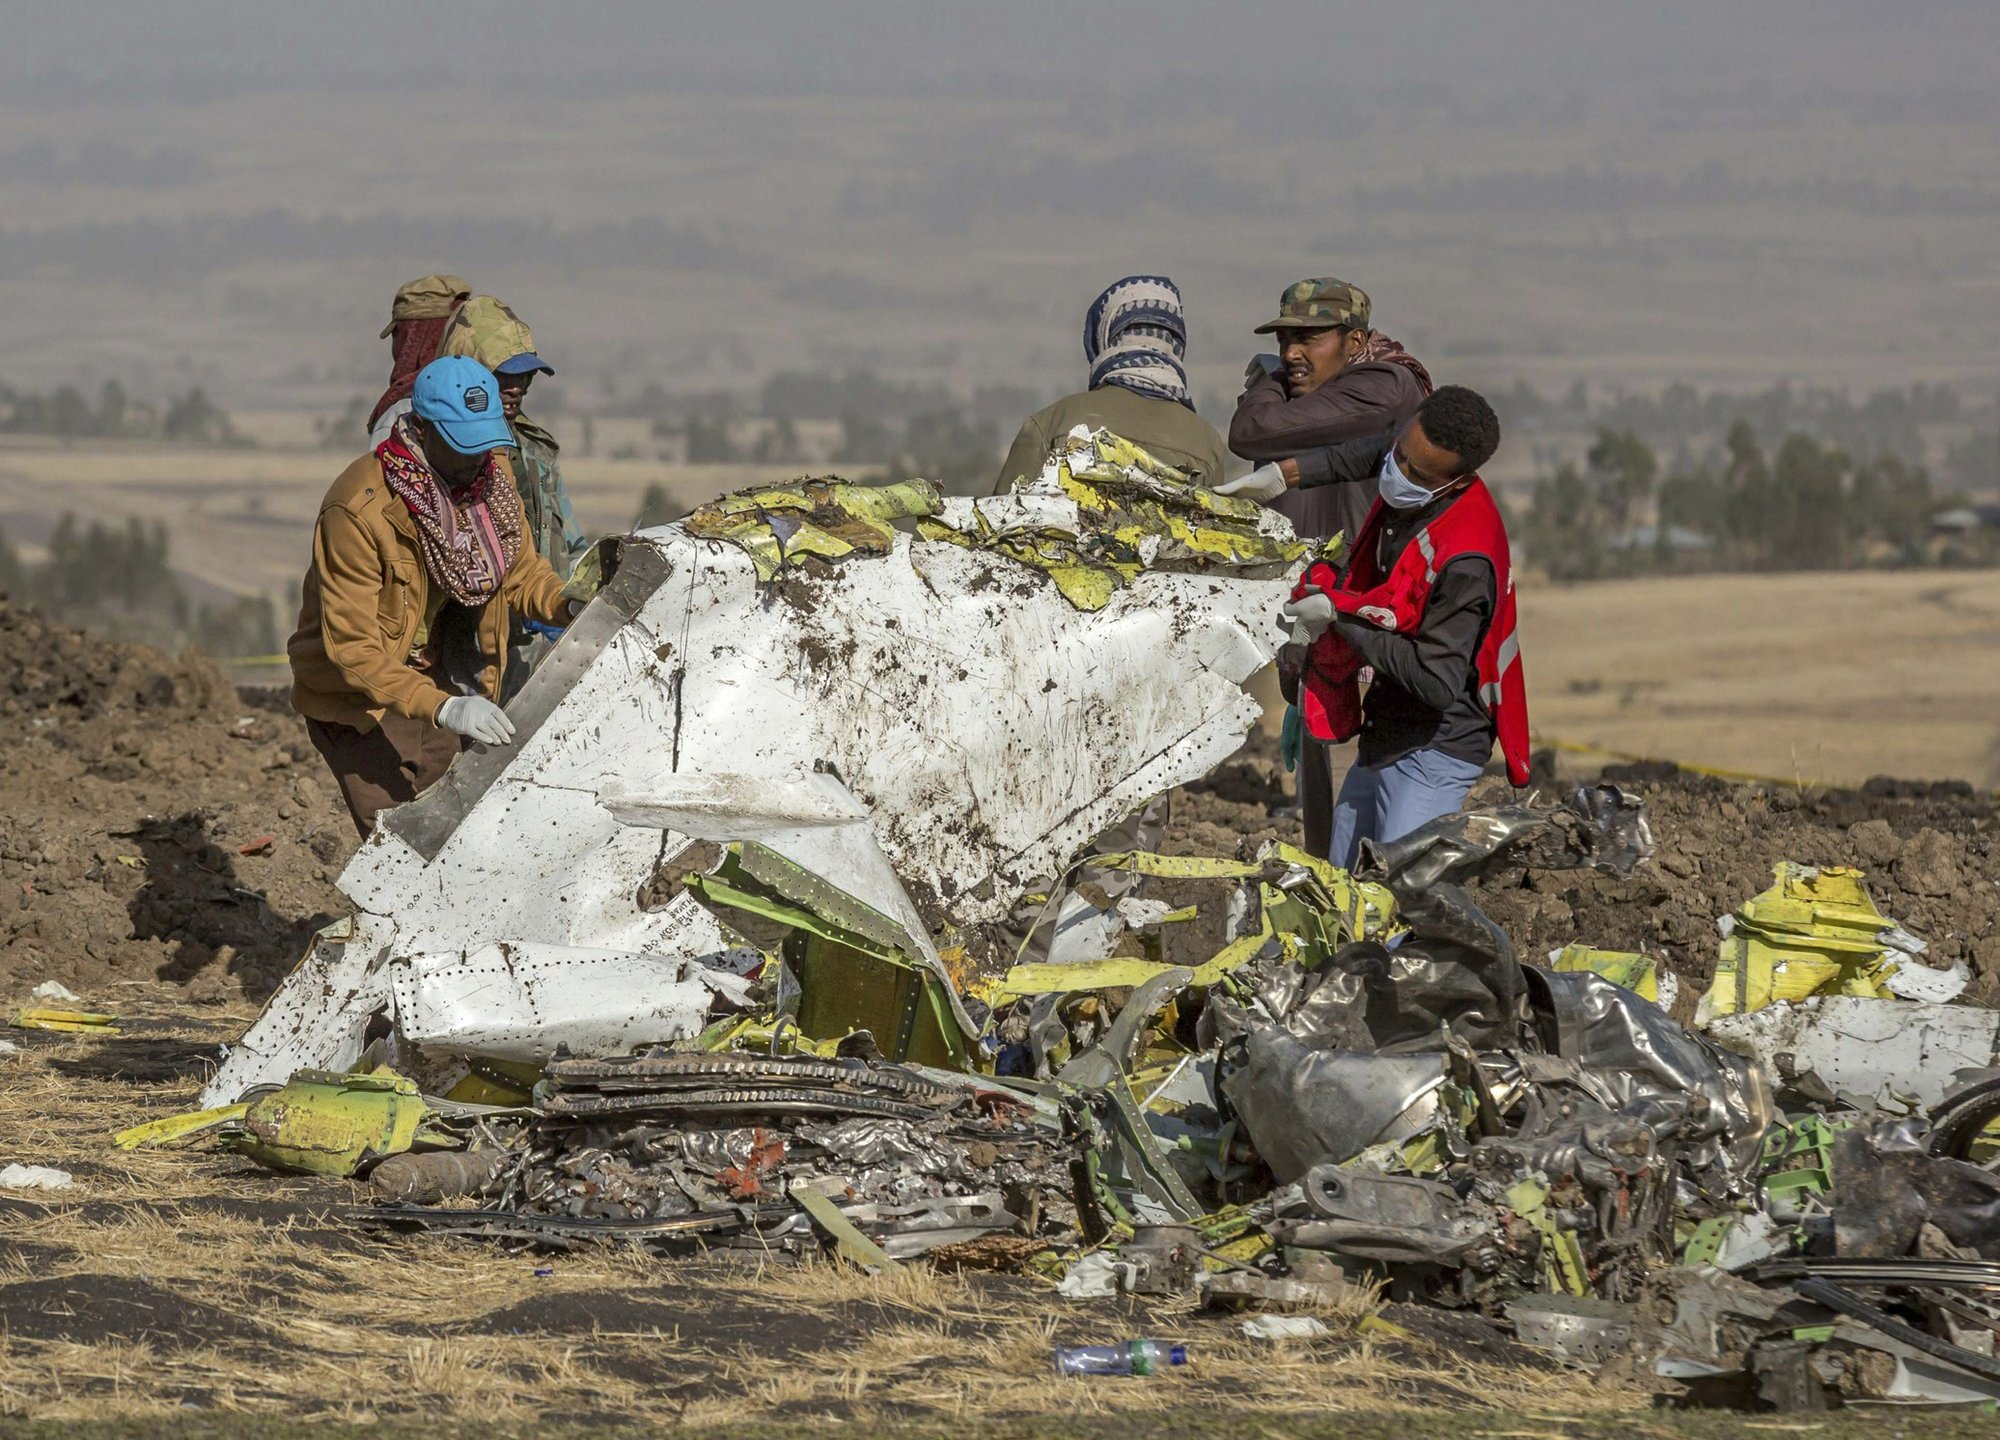 Ethiopian Airlines Plane Crash